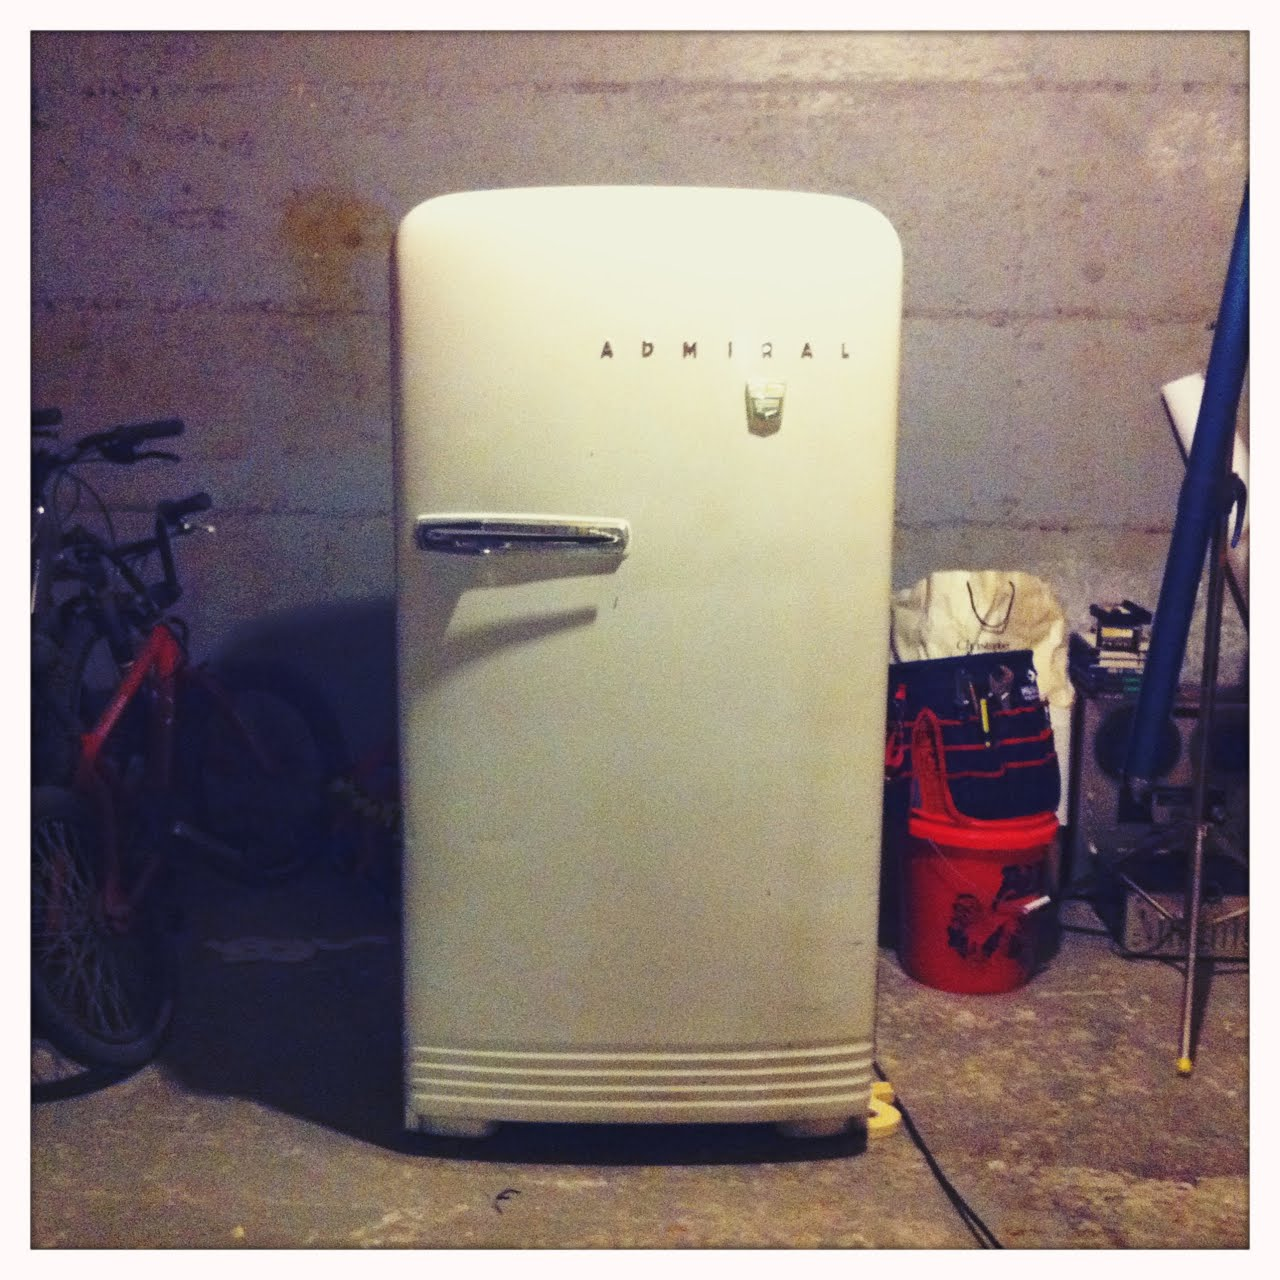 Vintage Fridge: A PLACE CALLED ASPEN: Vintage Refrigerator Revival